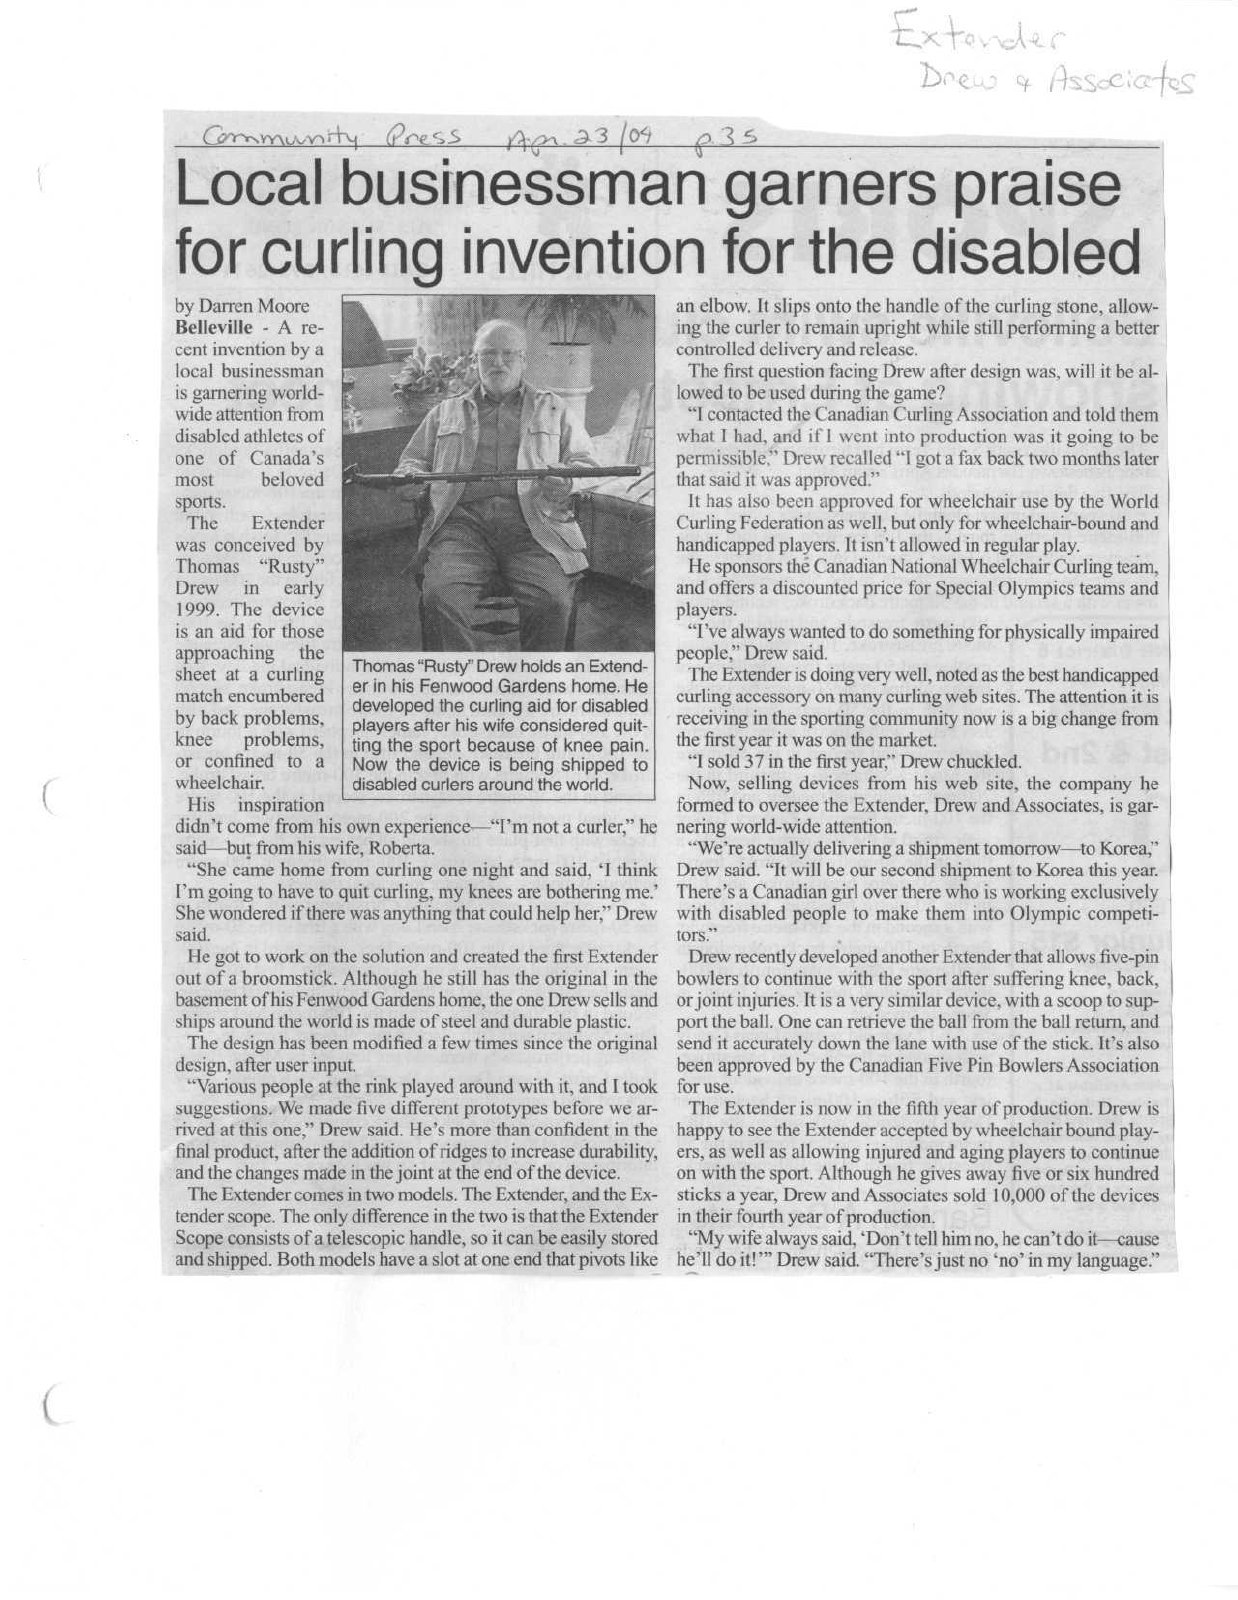 Local businessman garners praise for curling invention for the disabled